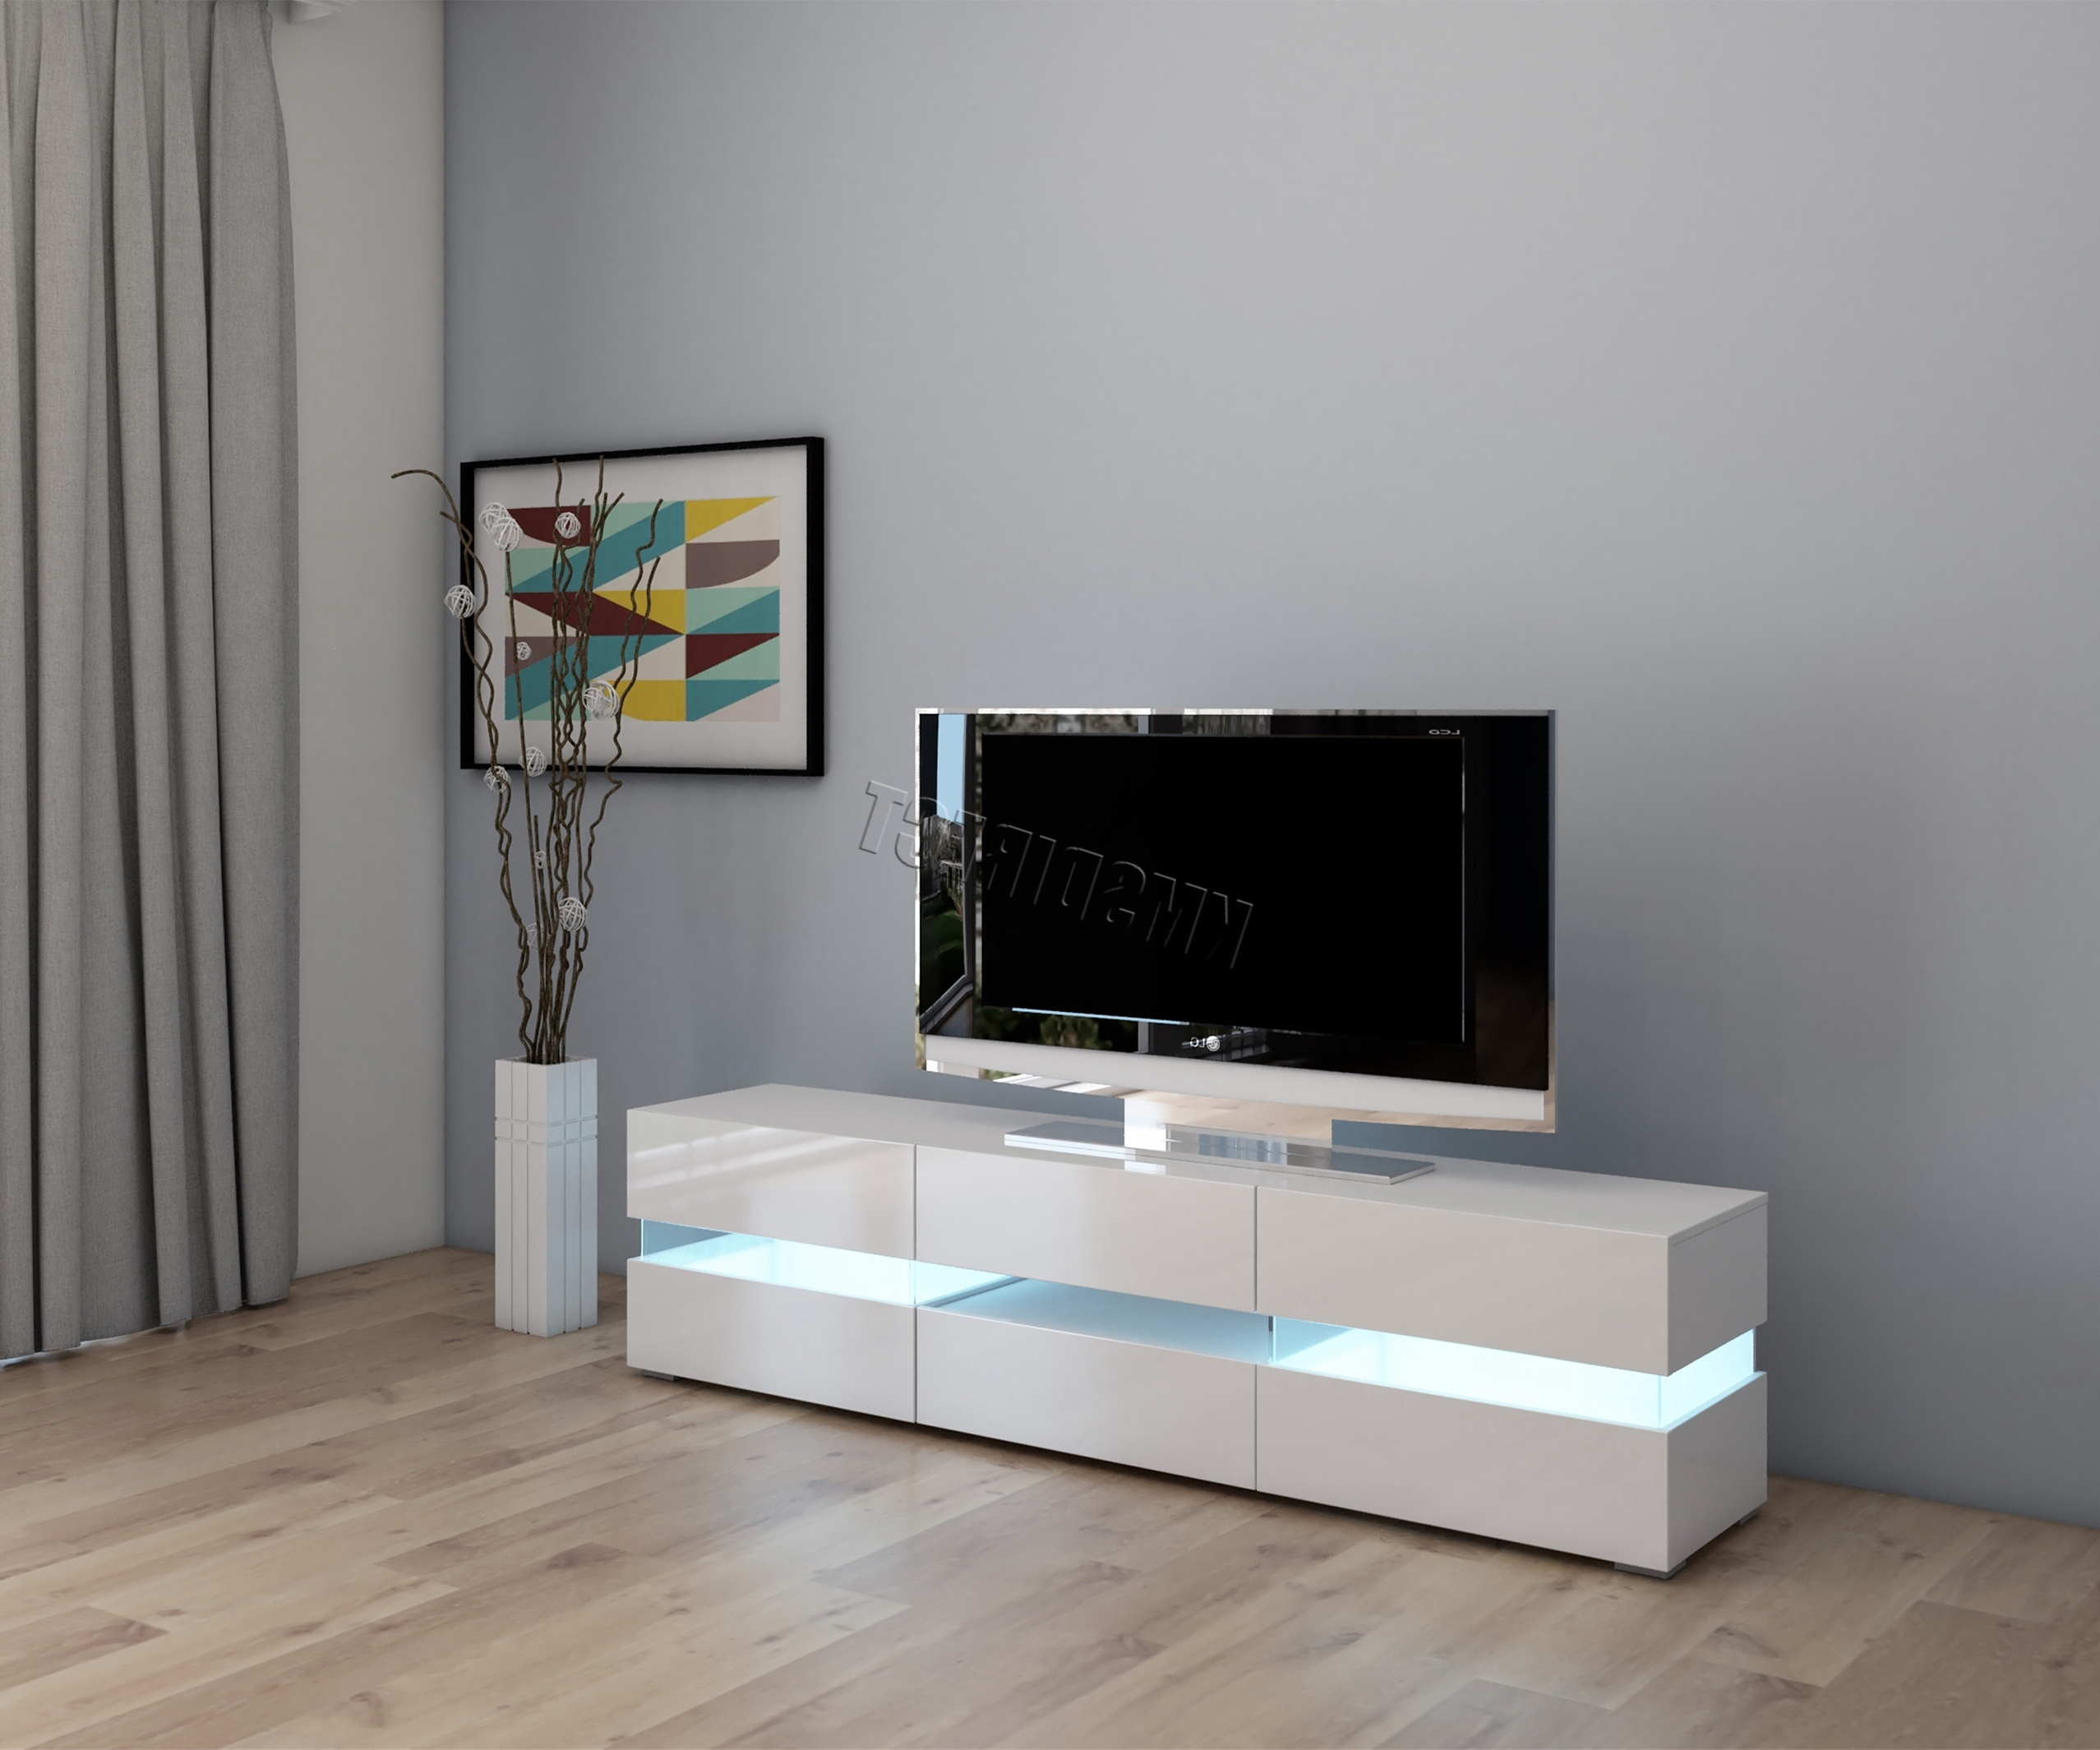 Led Tv Cabinets With Regard To Most Current Cosmetic Damaged Modern High Gloss Matt Tv Cabinet Unit Stand White (View 4 of 20)